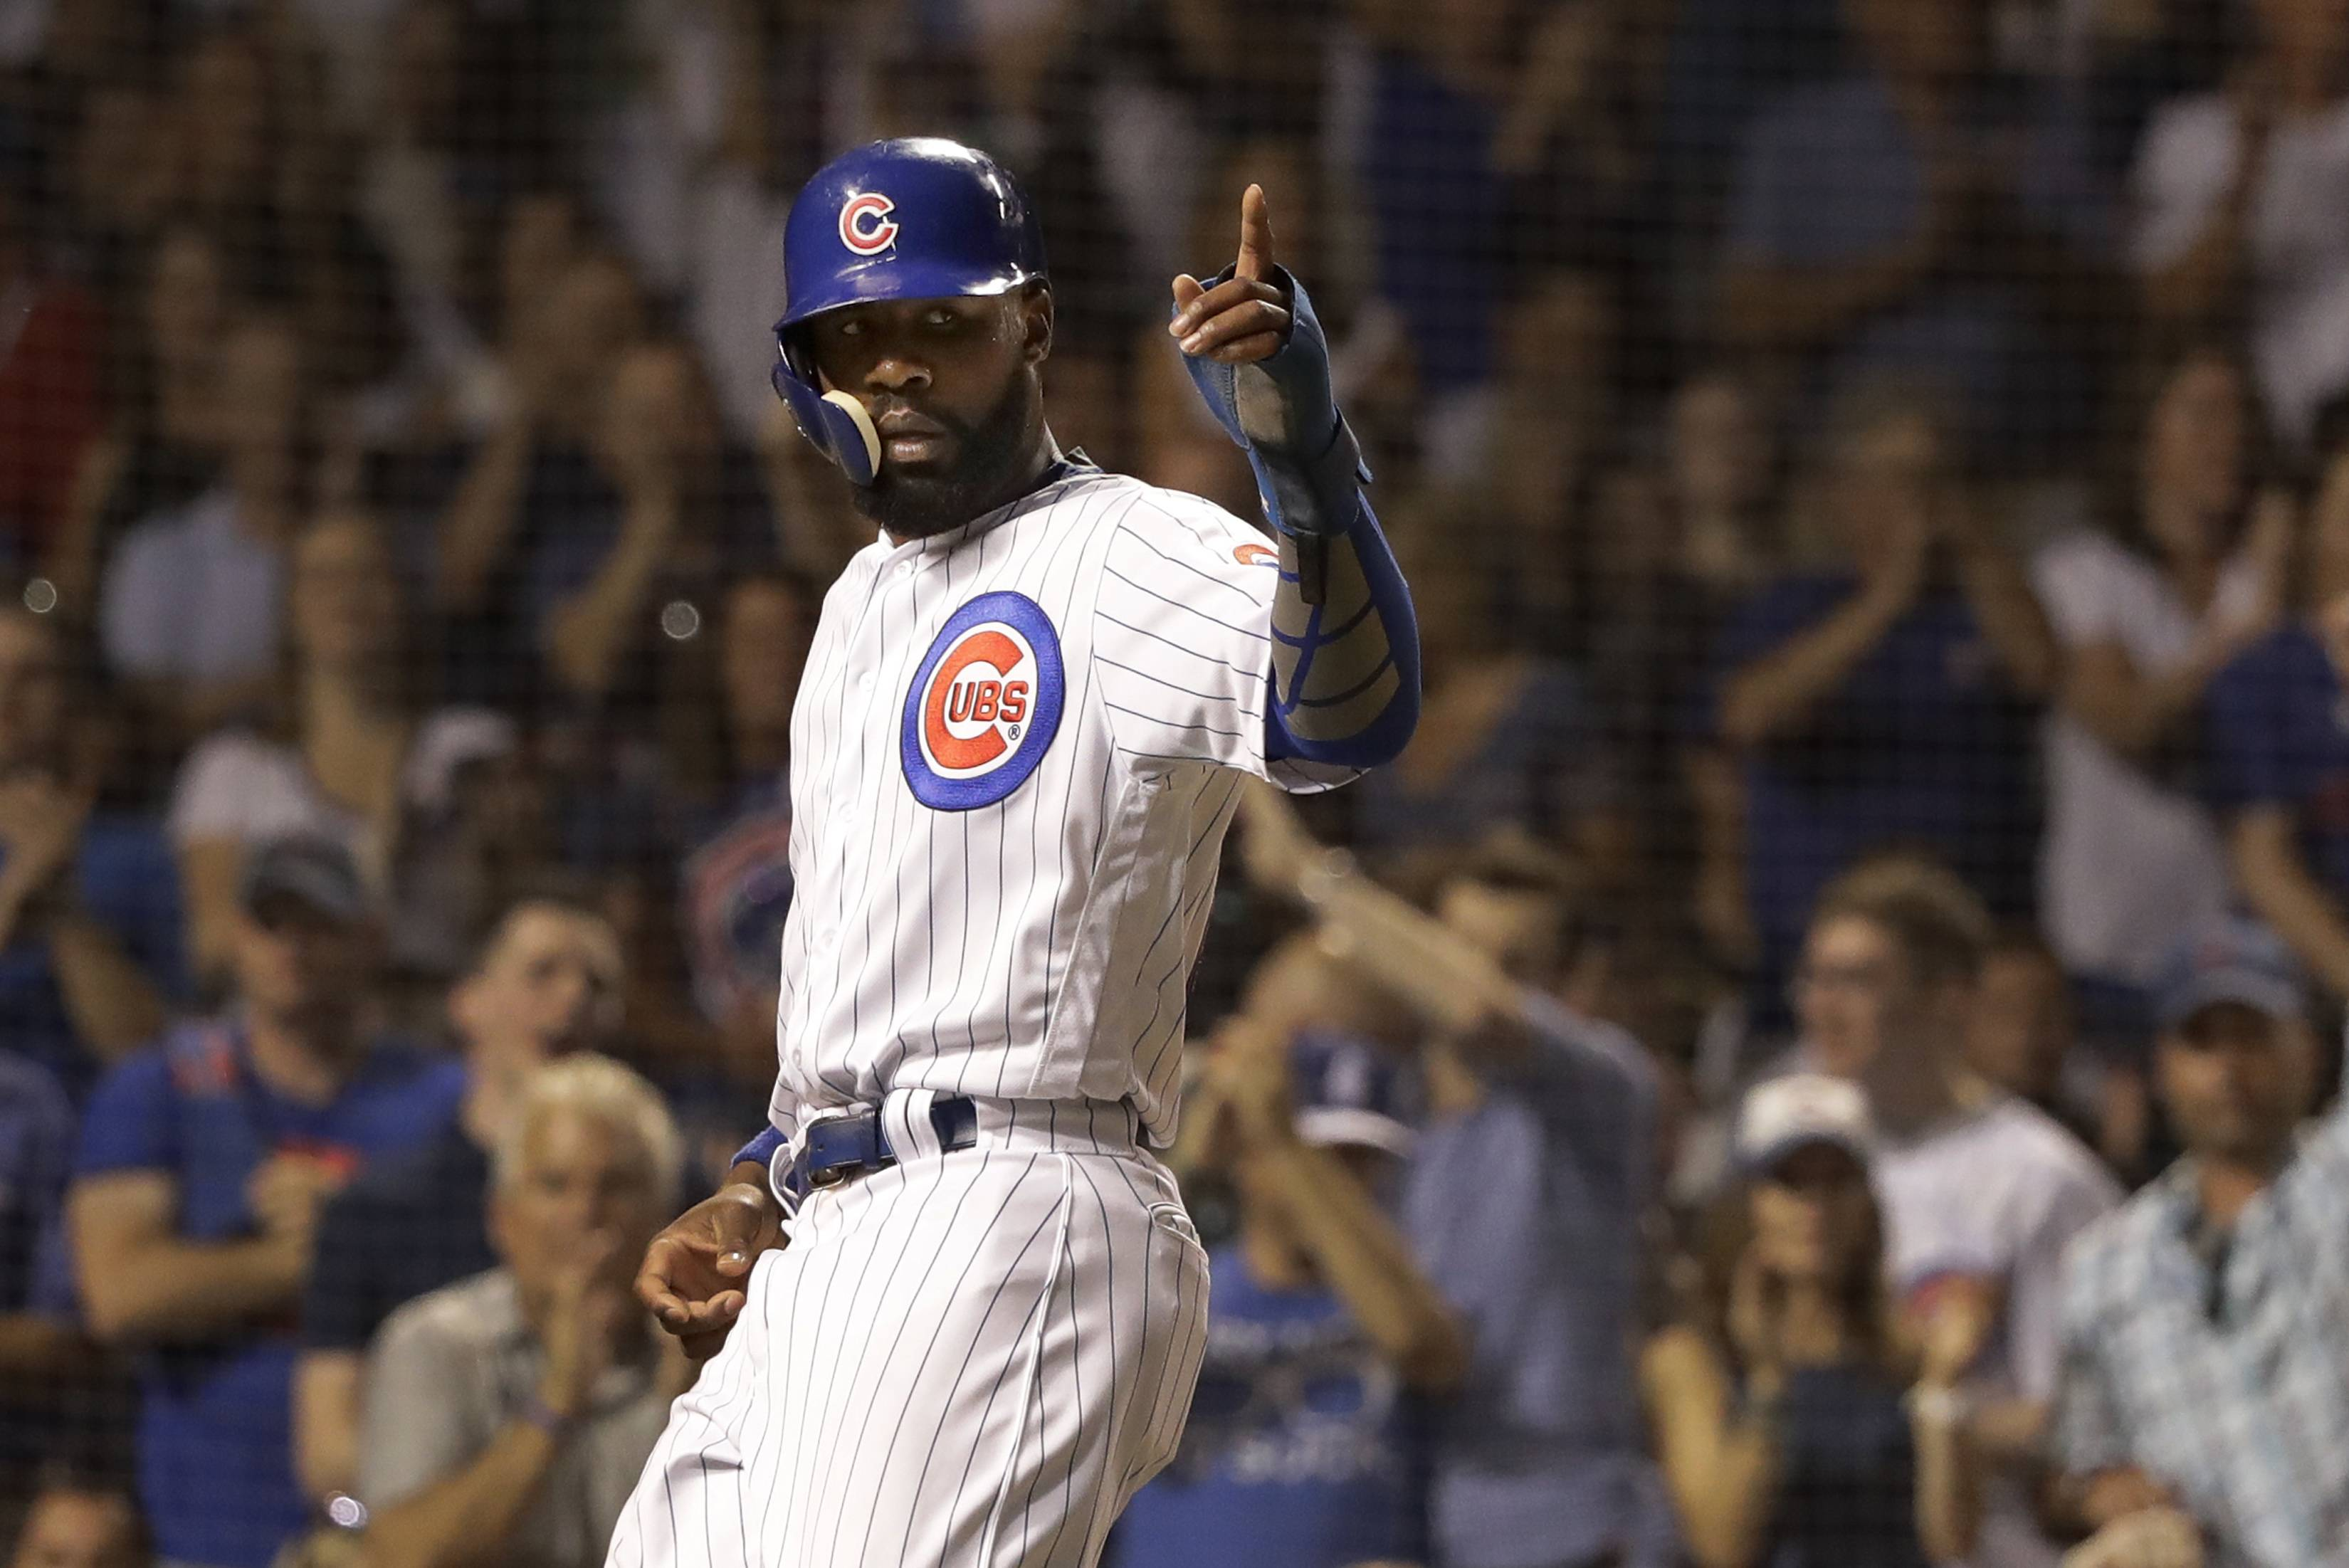 Cubs rally from shaky start, early deficit to beat Cardinals